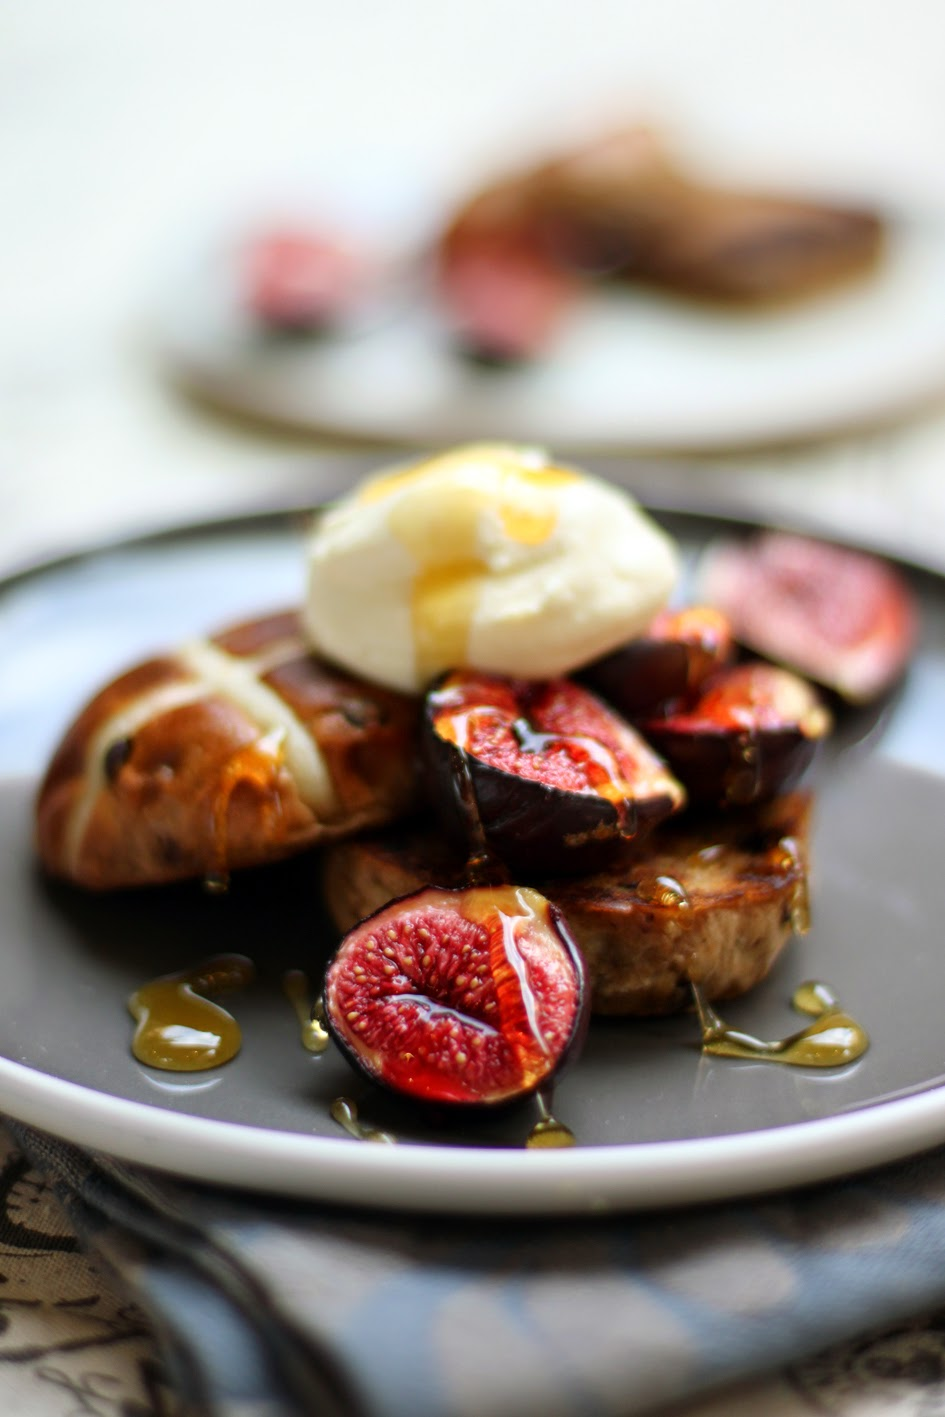 ... grilled figs with honeyed dessert recipe grilled figs grilled figs